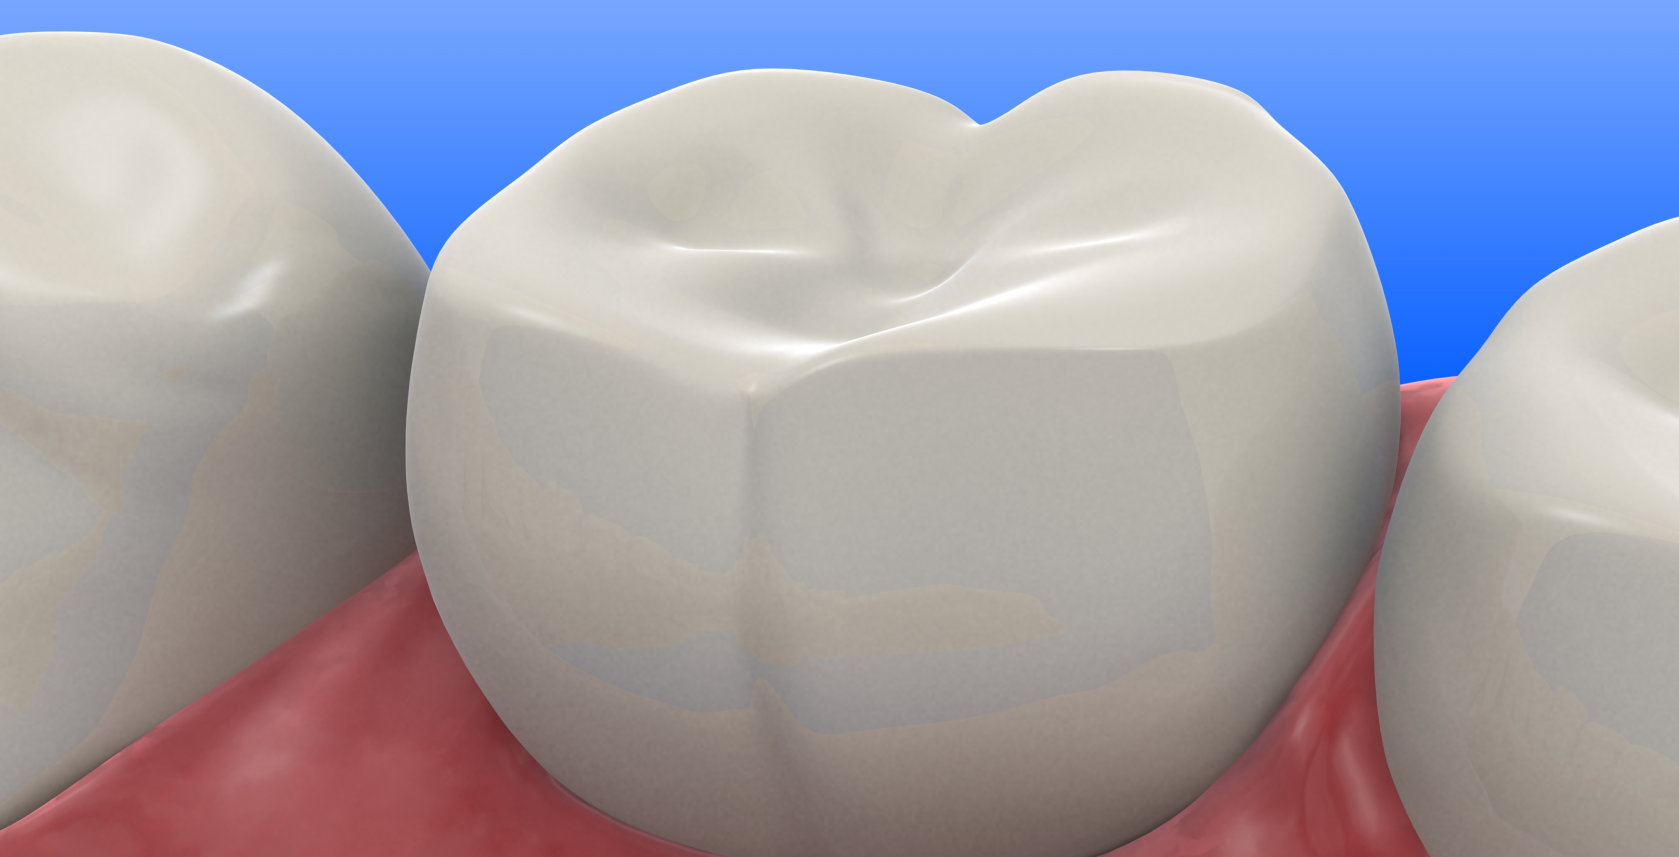 image of tooth